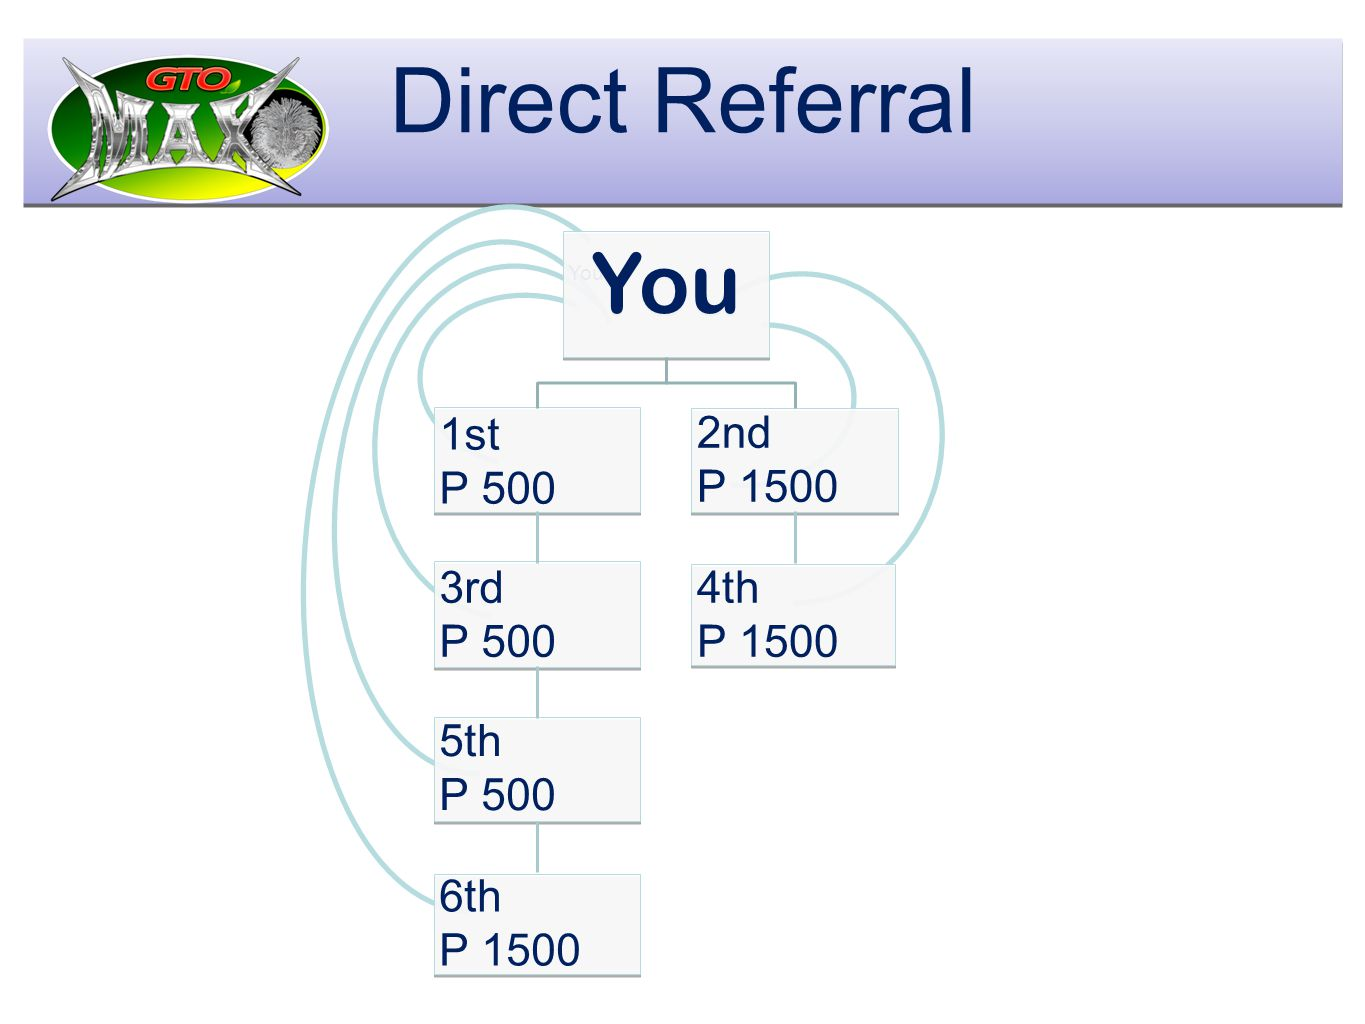 t Direct Referral You 1st P 500 2nd P 1500 3rd P 500 4th P 1500 5th